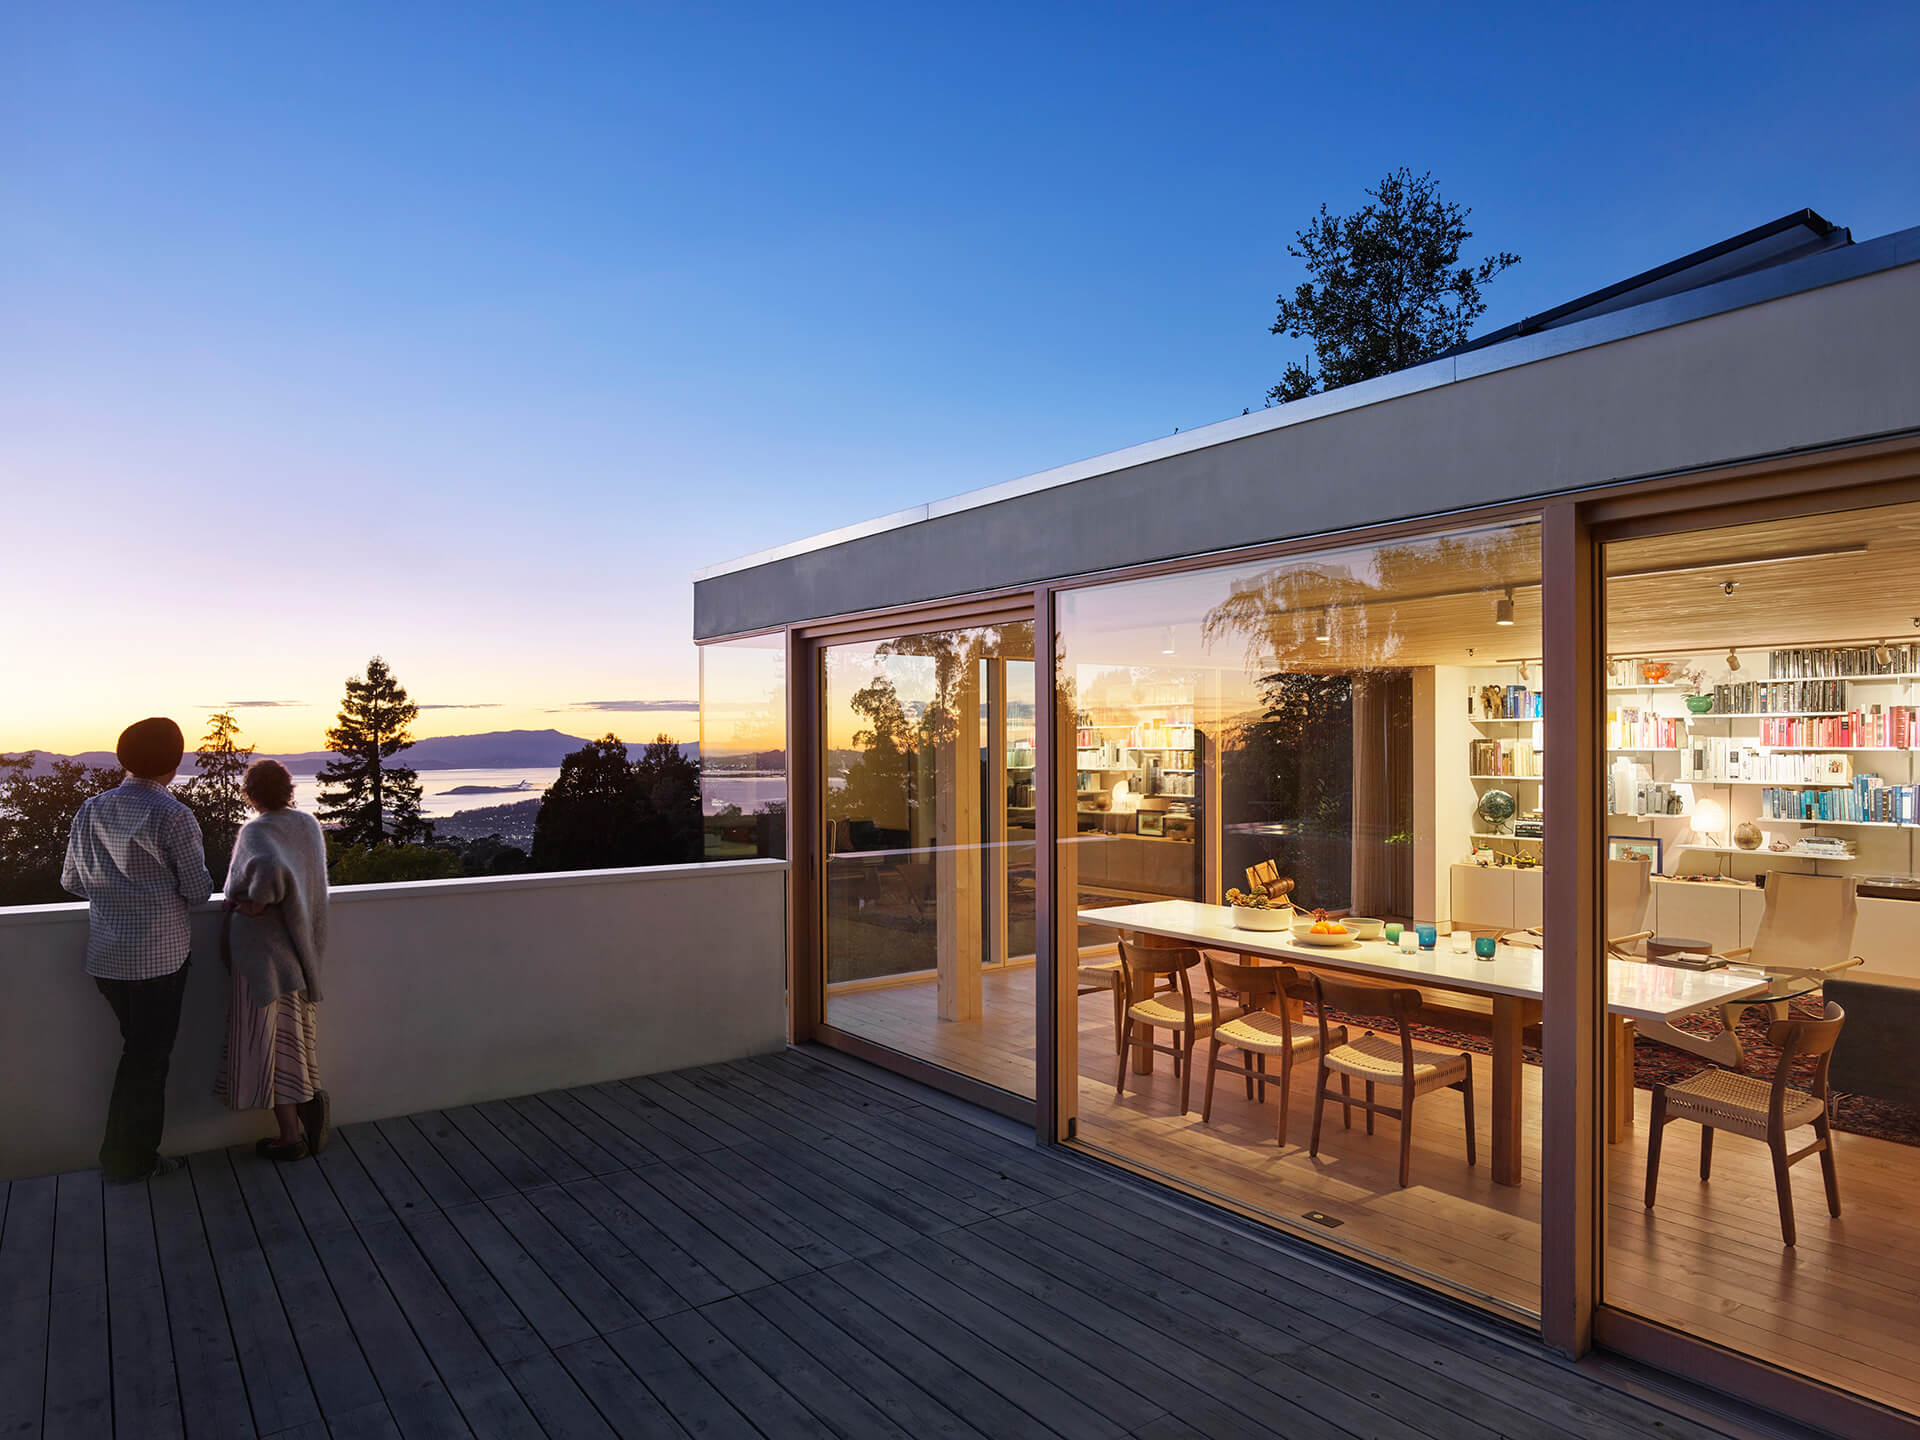 House of Light's balcony | House of Light designed by Rangr Studio | STIRworld